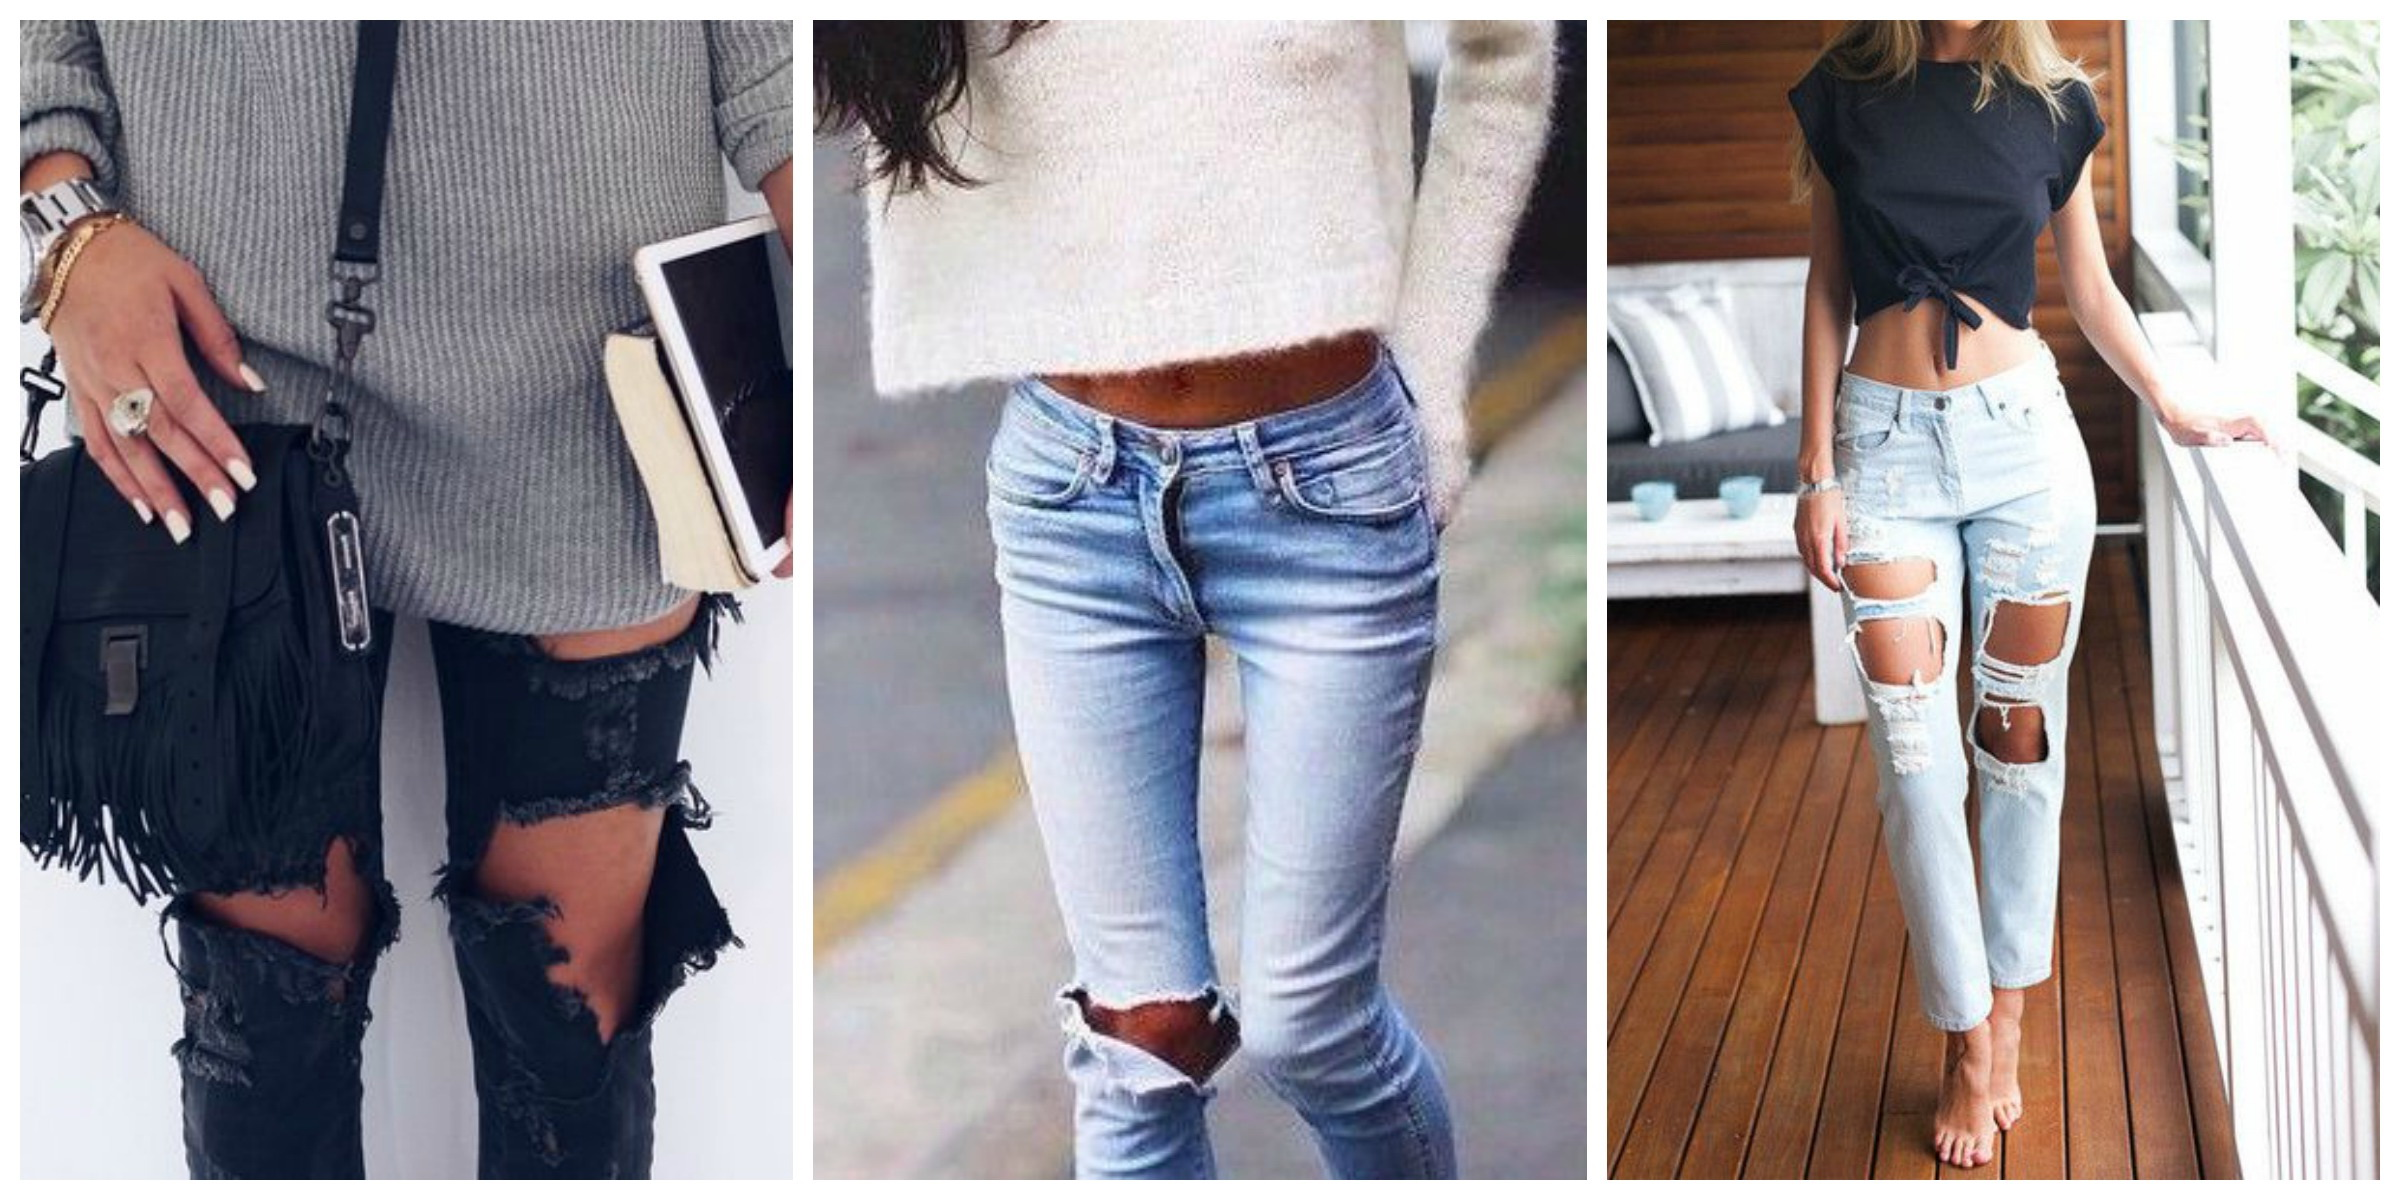 The Best Distressed Jeans Styles 2017 | FashionTasty.com